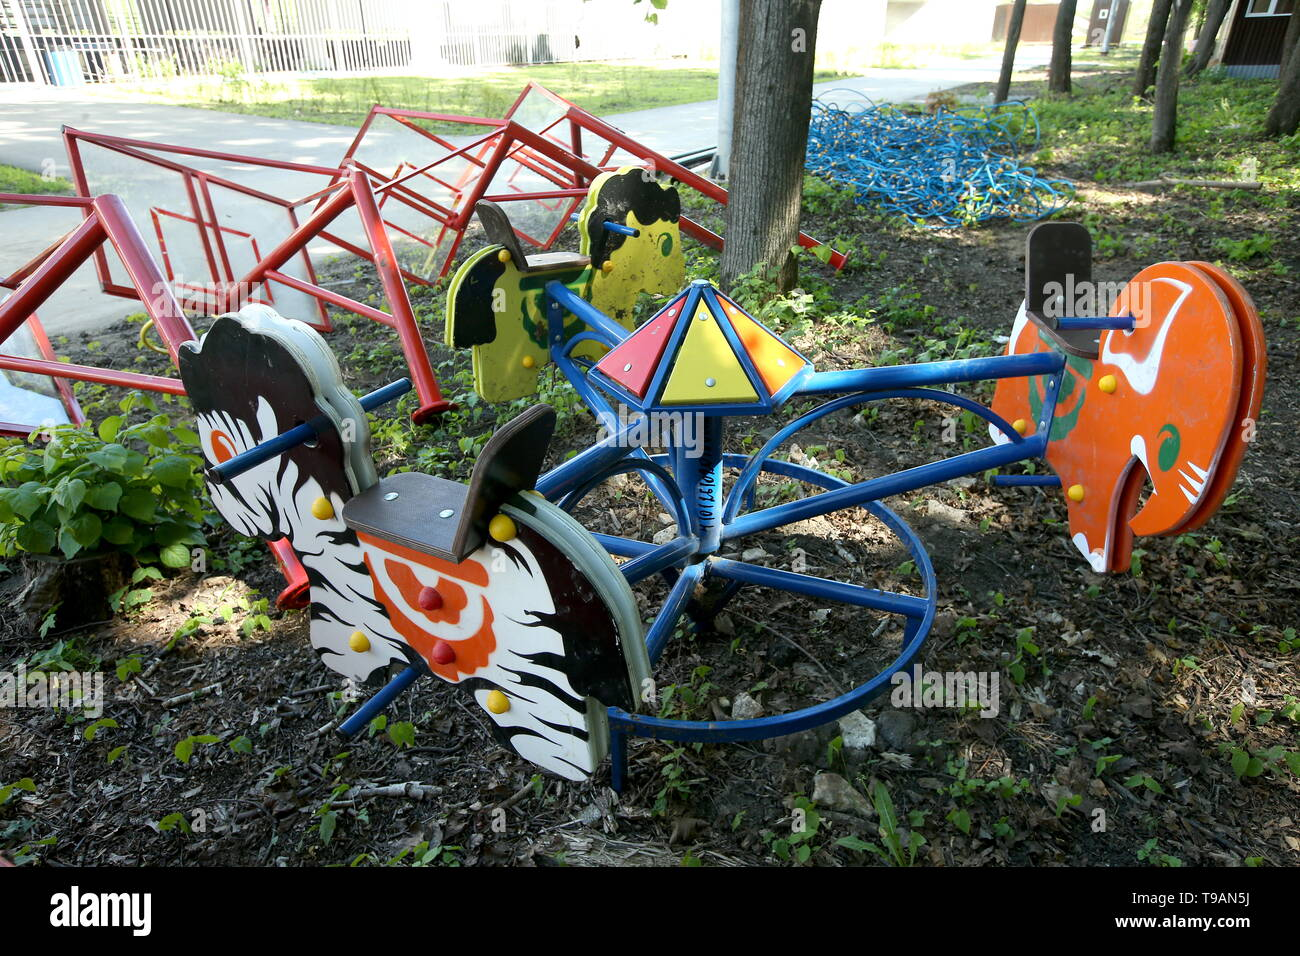 Ryazan, Russia. 17th May, 2019. RYAZAN, RUSSIA - MAY 17, 2019: Uninstalled equipment on a children's playground in Ryazan's Lesopark. On May 16, 2019, journalists complained to Russian President Vladimir Putin about the absence of a children's playground which had been largely funded by the city budget. Alexander Ryumin/TASS Credit: ITAR-TASS News Agency/Alamy Live News Stock Photo